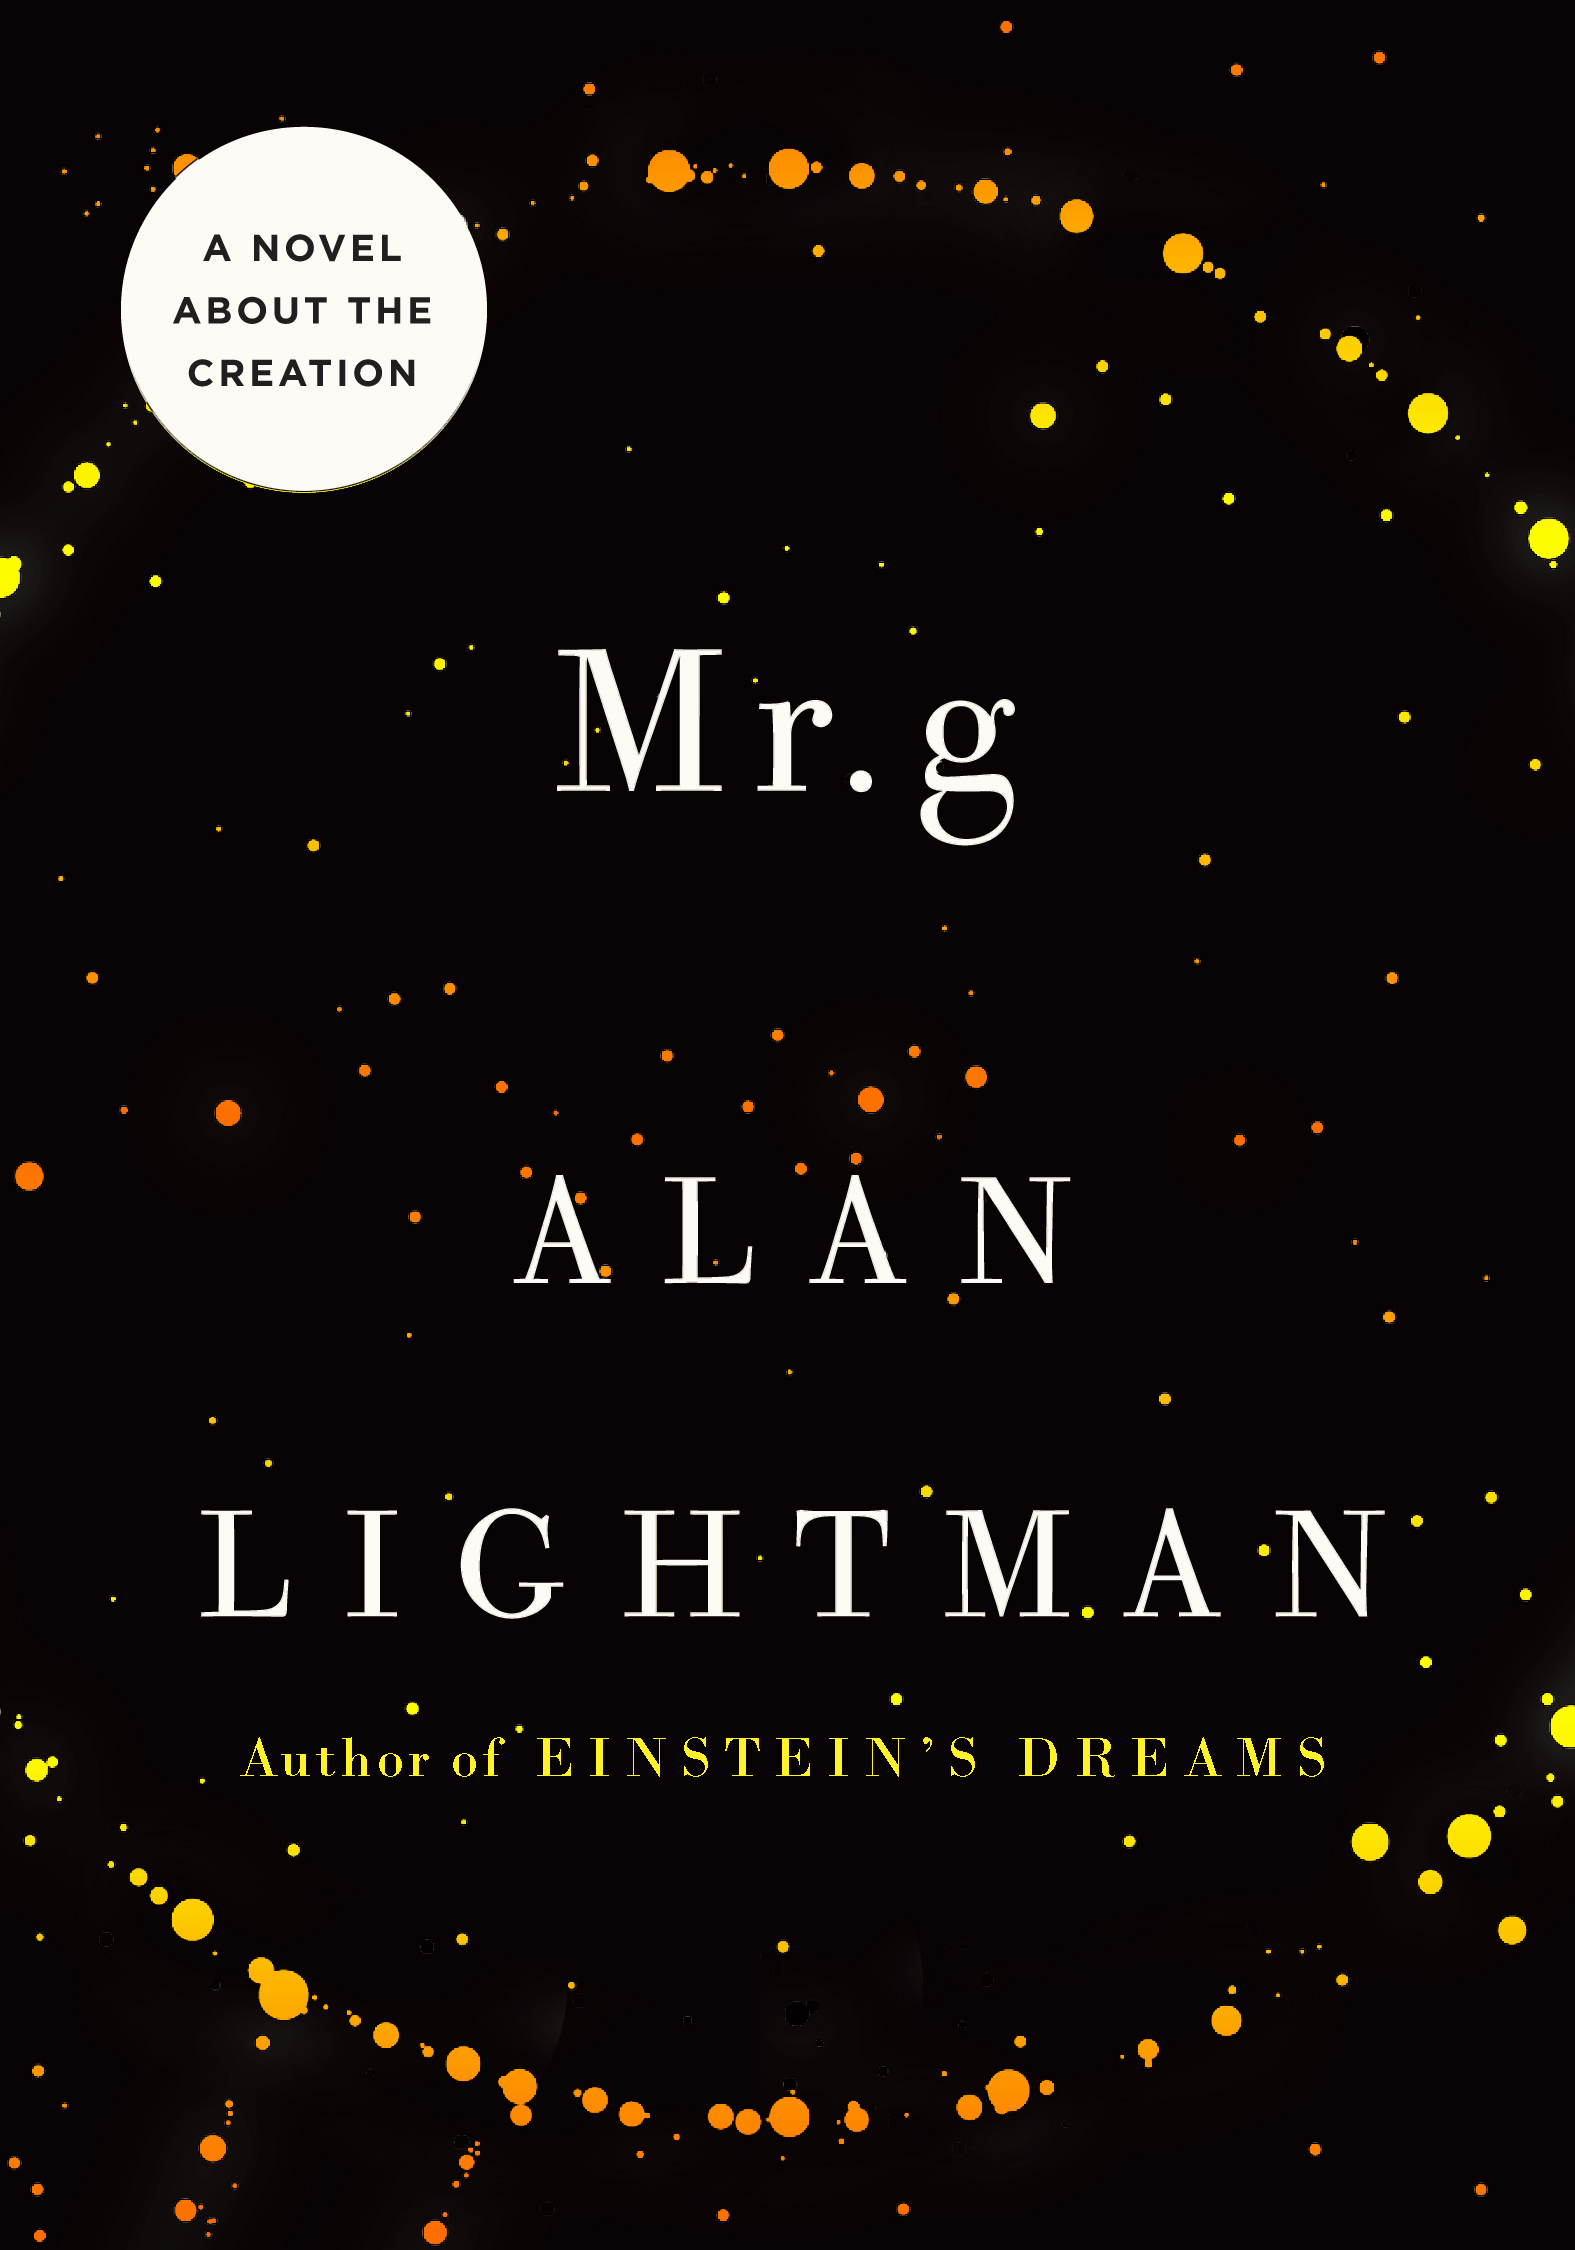 Mr g by Alan Lightman: Book Review [The Ryan Dixon Line]